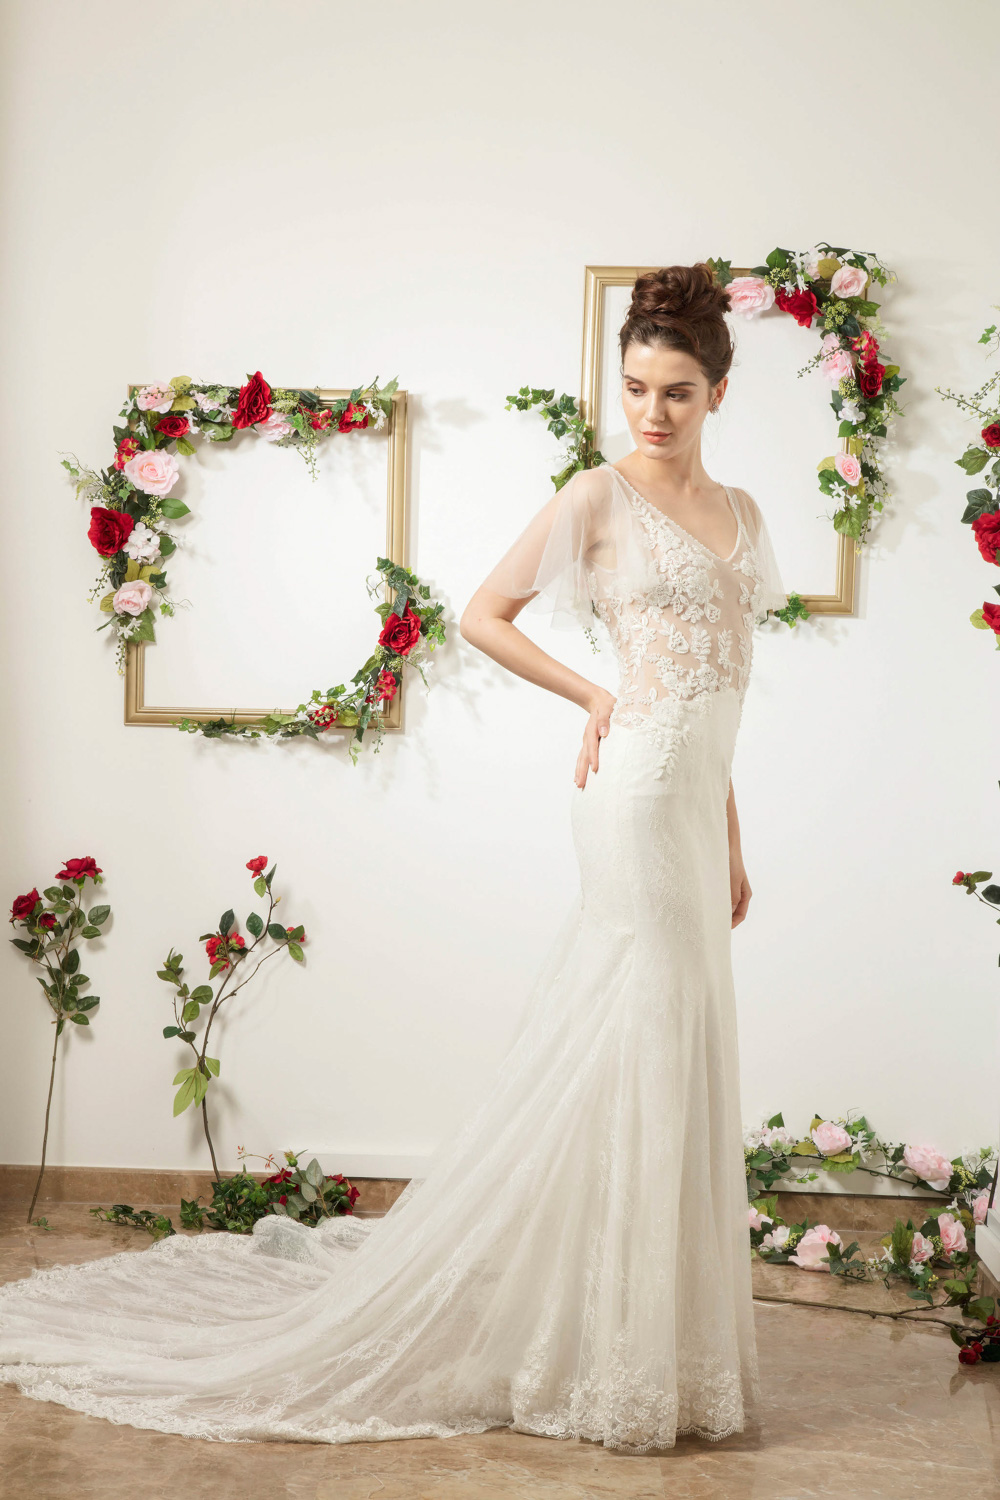 Translucent bodice wedding dress with train by CCM Wedding